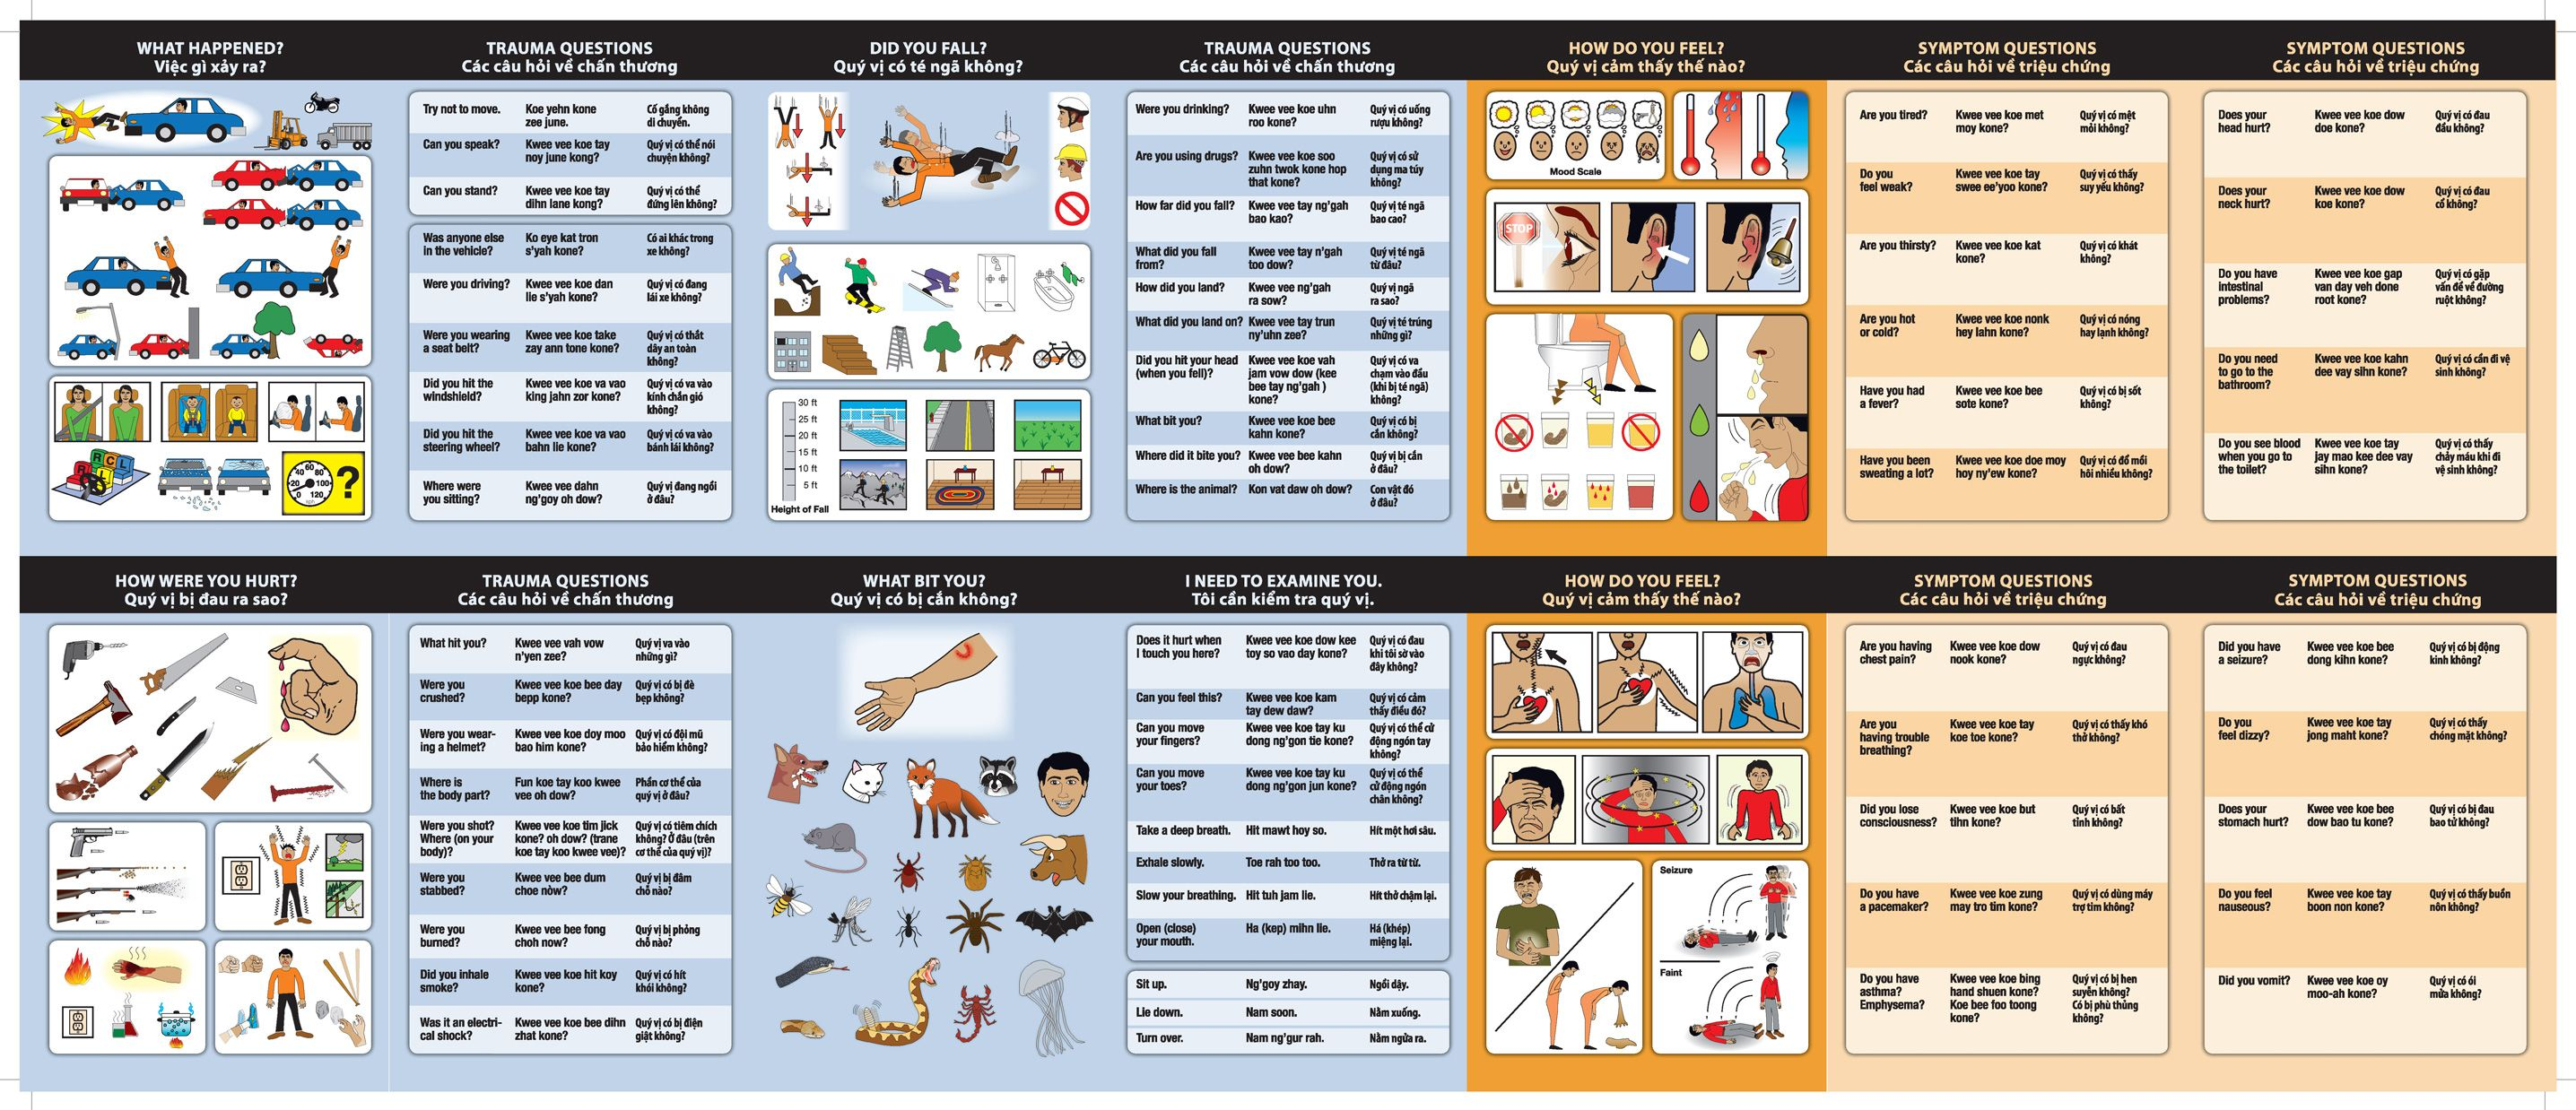 4a66b48f0322 CLREC English-Vietnamese Medical Translator - Kwikpoint.com Kwikpoint.com -  Visual Language Communications